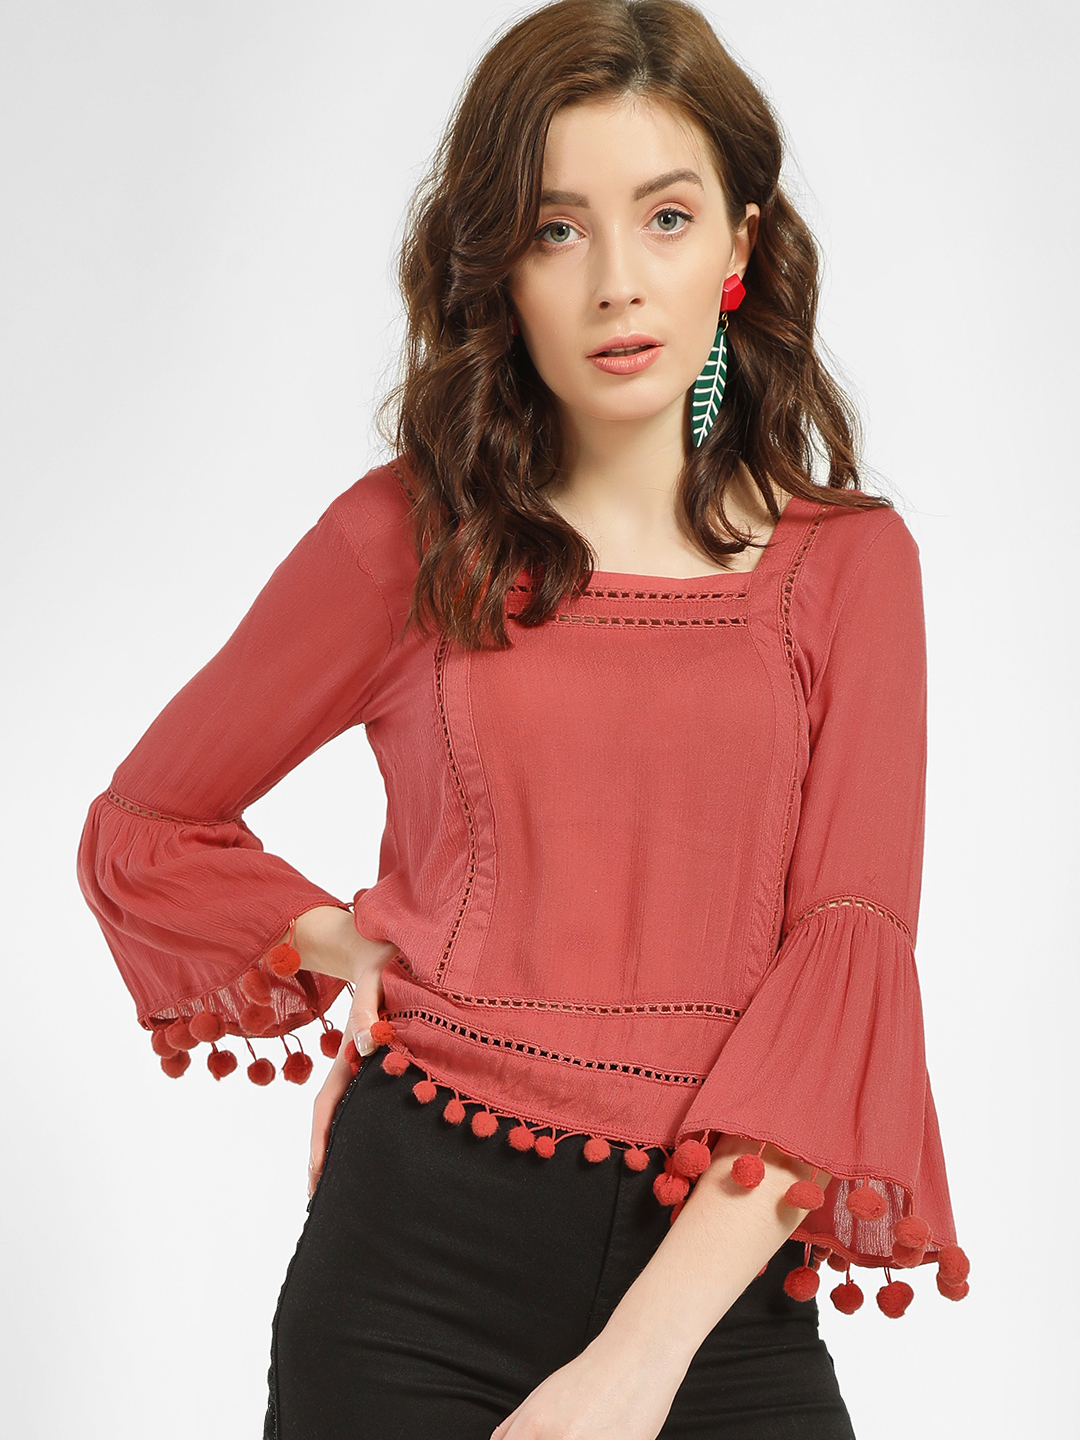 MIWAY Red Pom-Pom Lace Insert Blouse 1